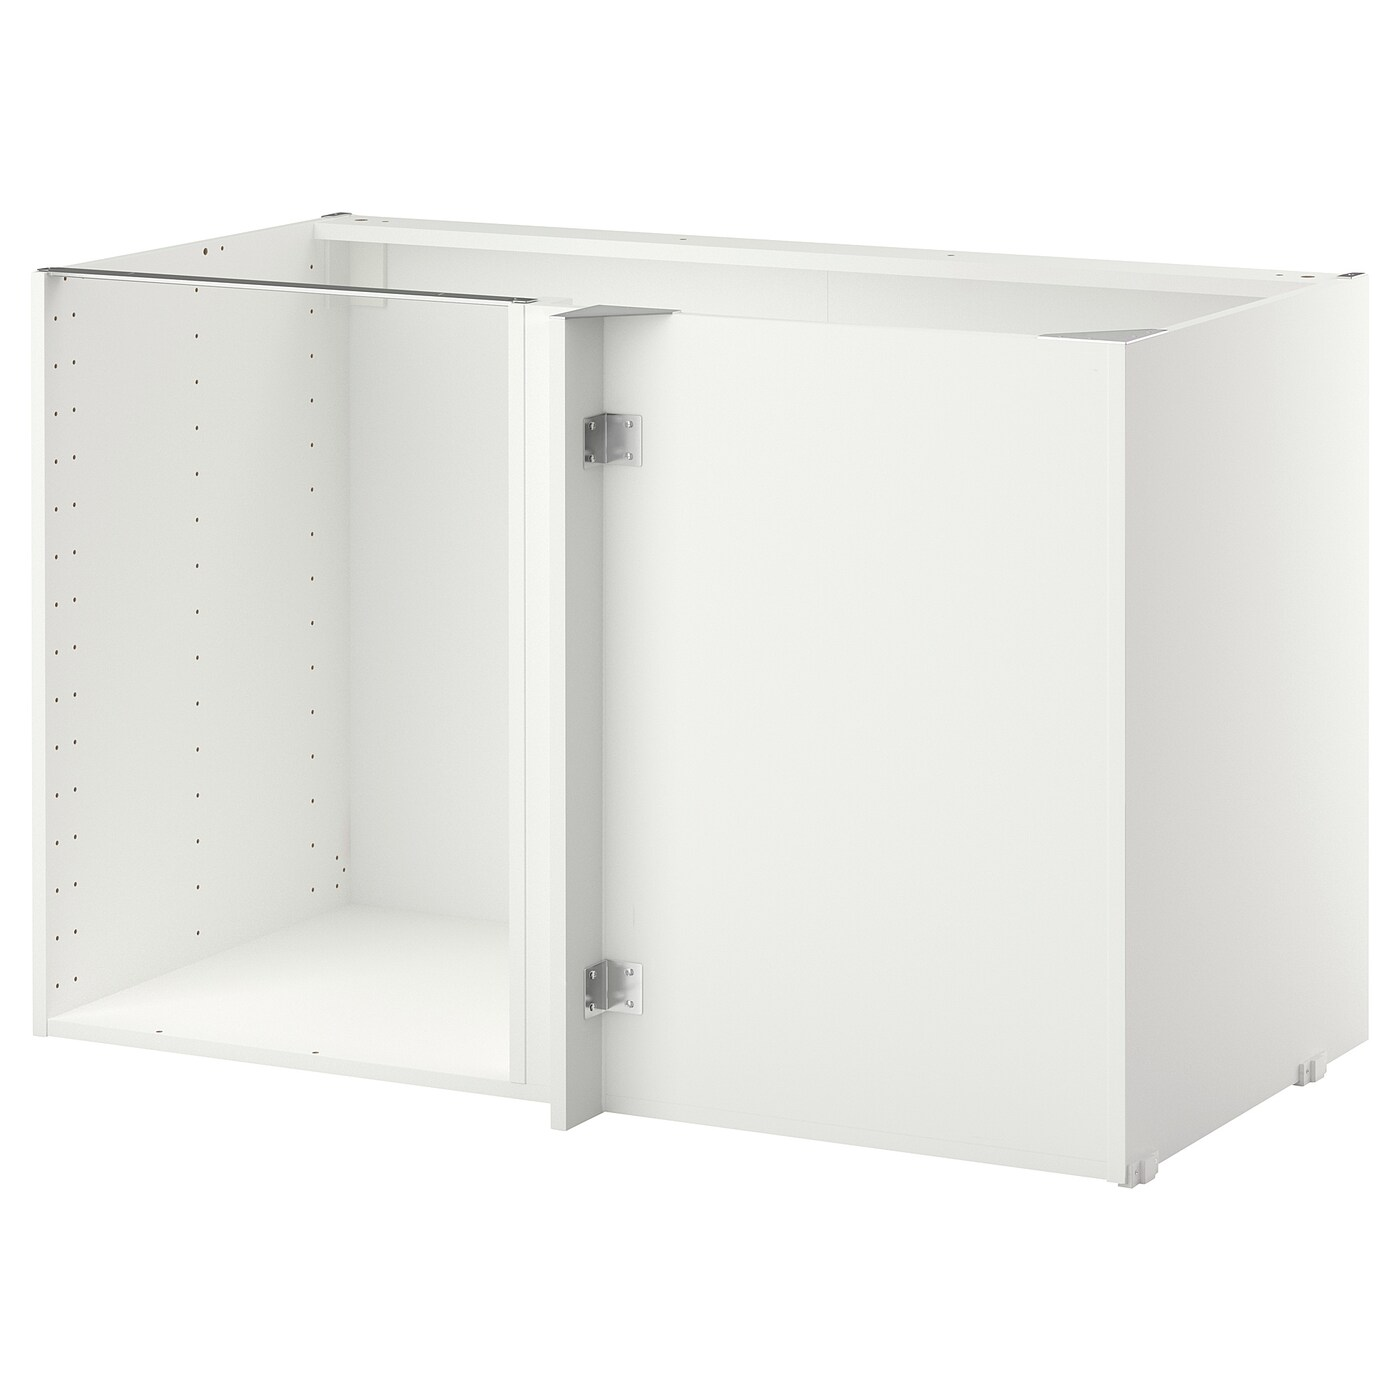 Ikea Method Metod Corner Base Cabinet Frame White